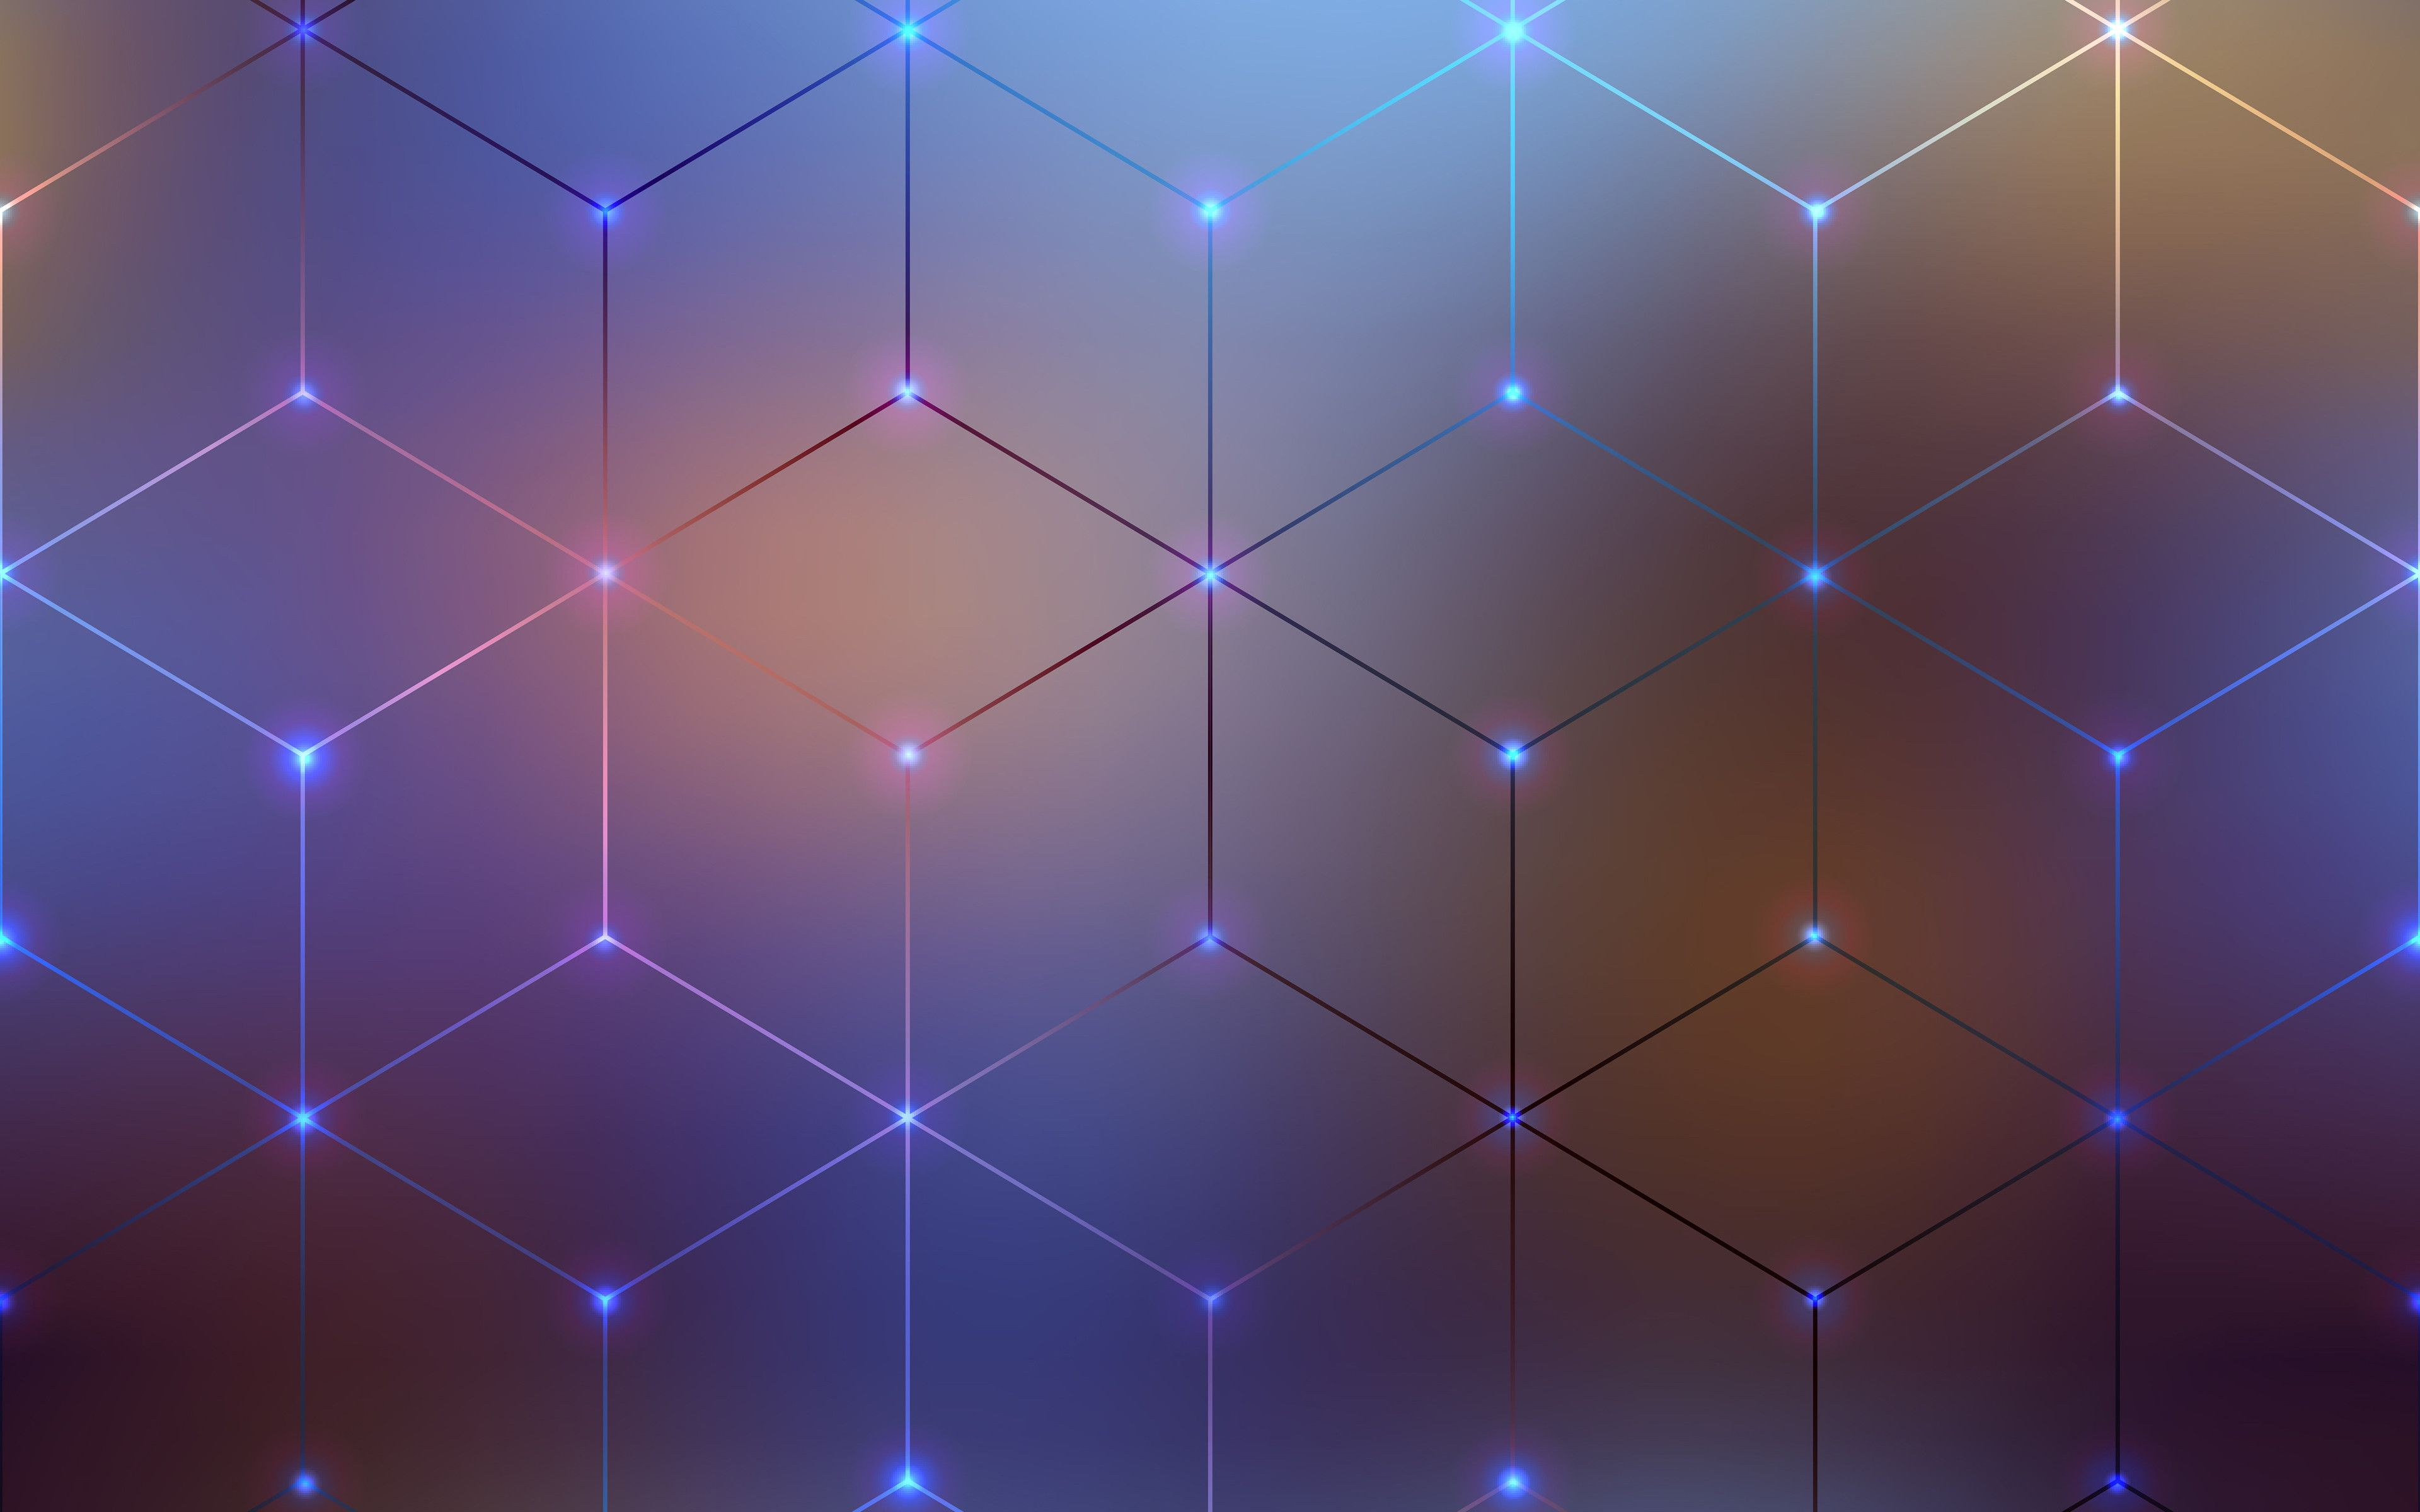 Geometric Shapes Wallpapers Top Free Geometric Shapes